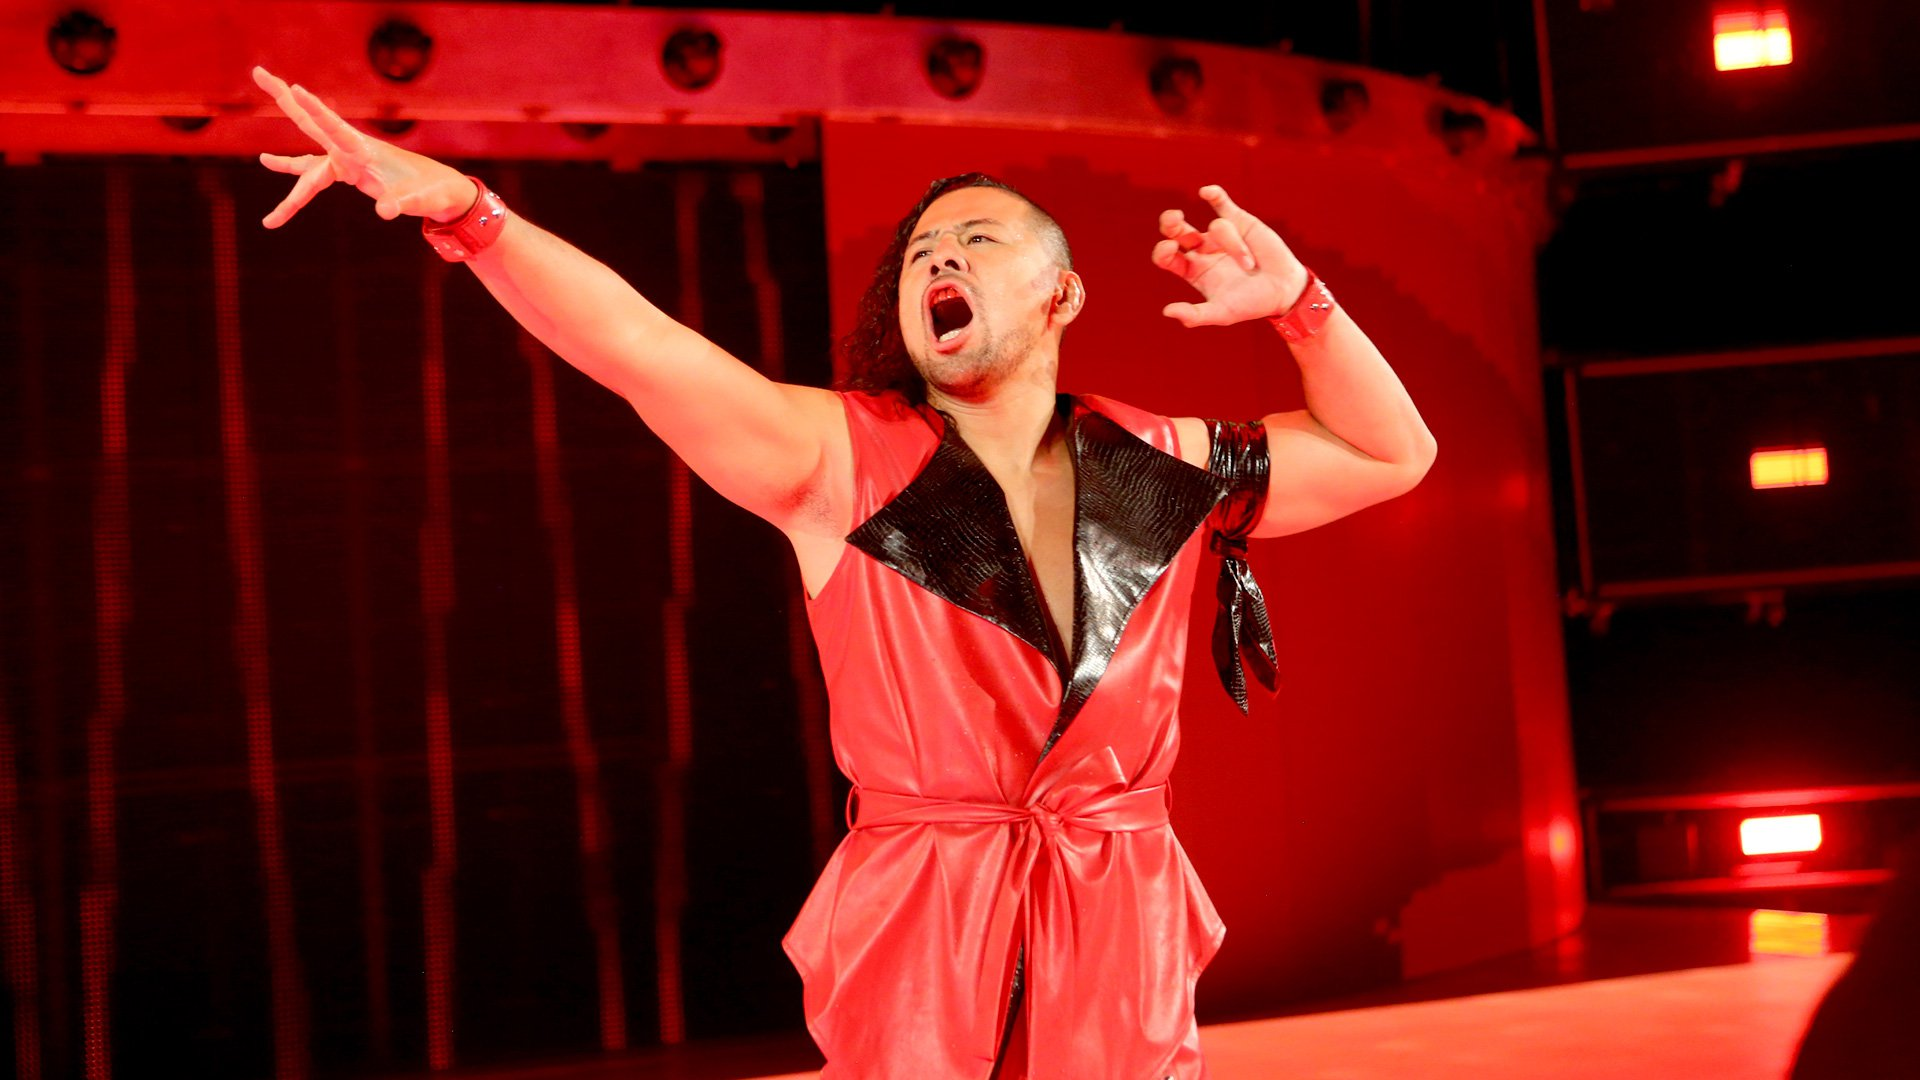 Nakamura makes his hotly-anticipated entrance to the delight of the WWE Universe.